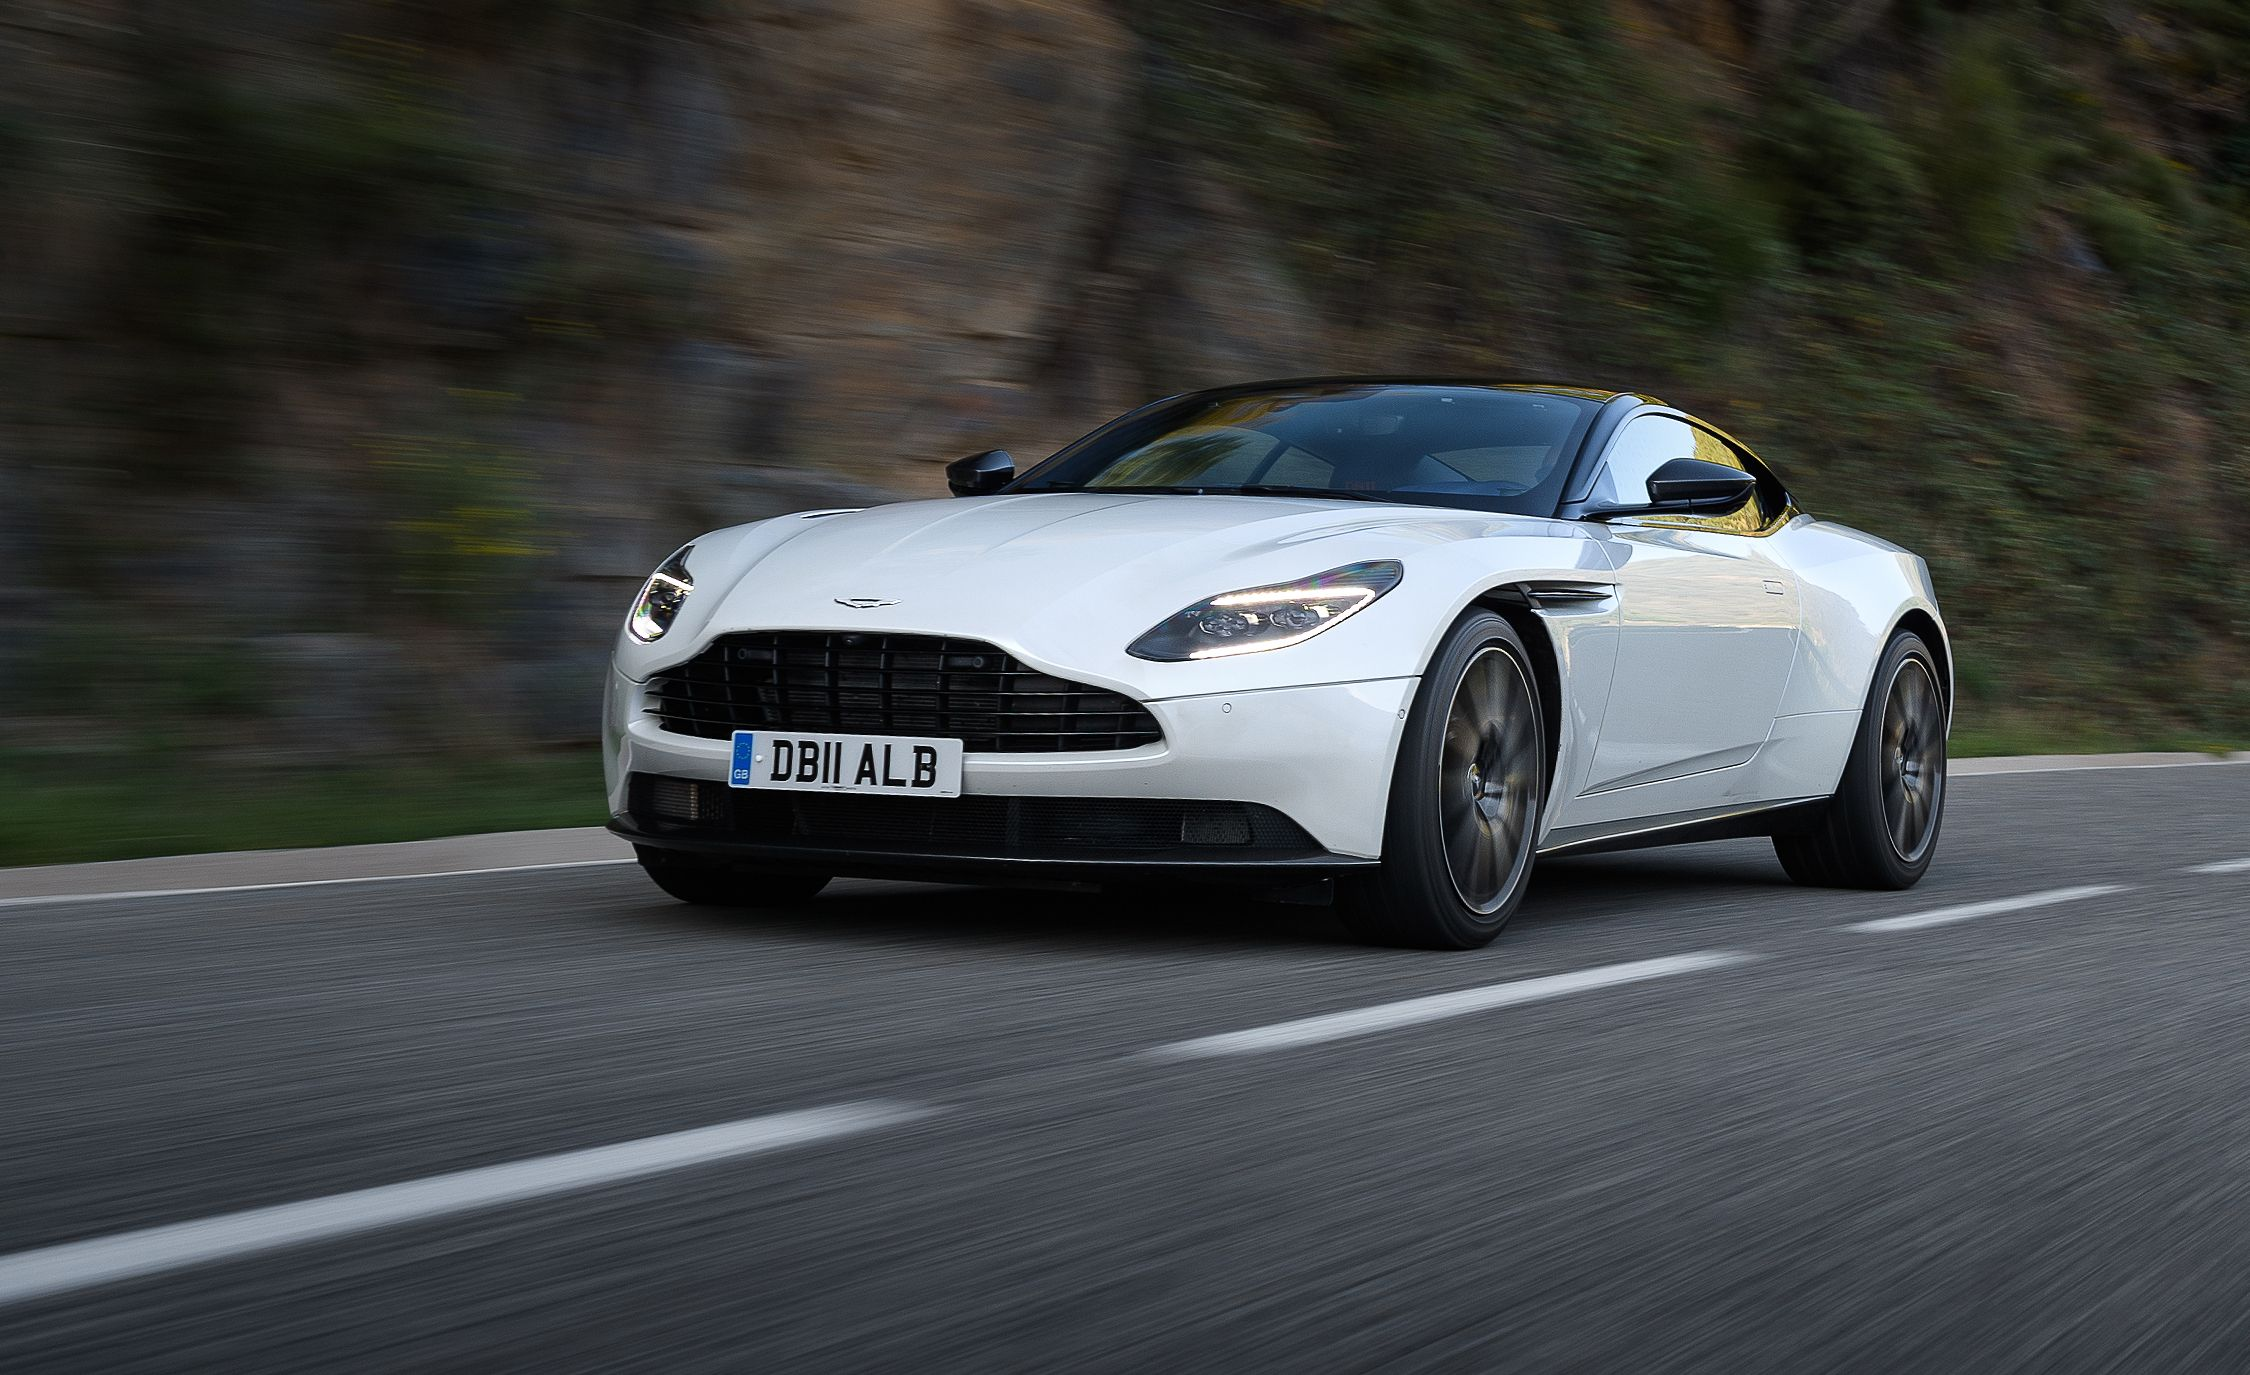 2018 Aston Martin Db11 V 8 First Drive Review Car And Driver